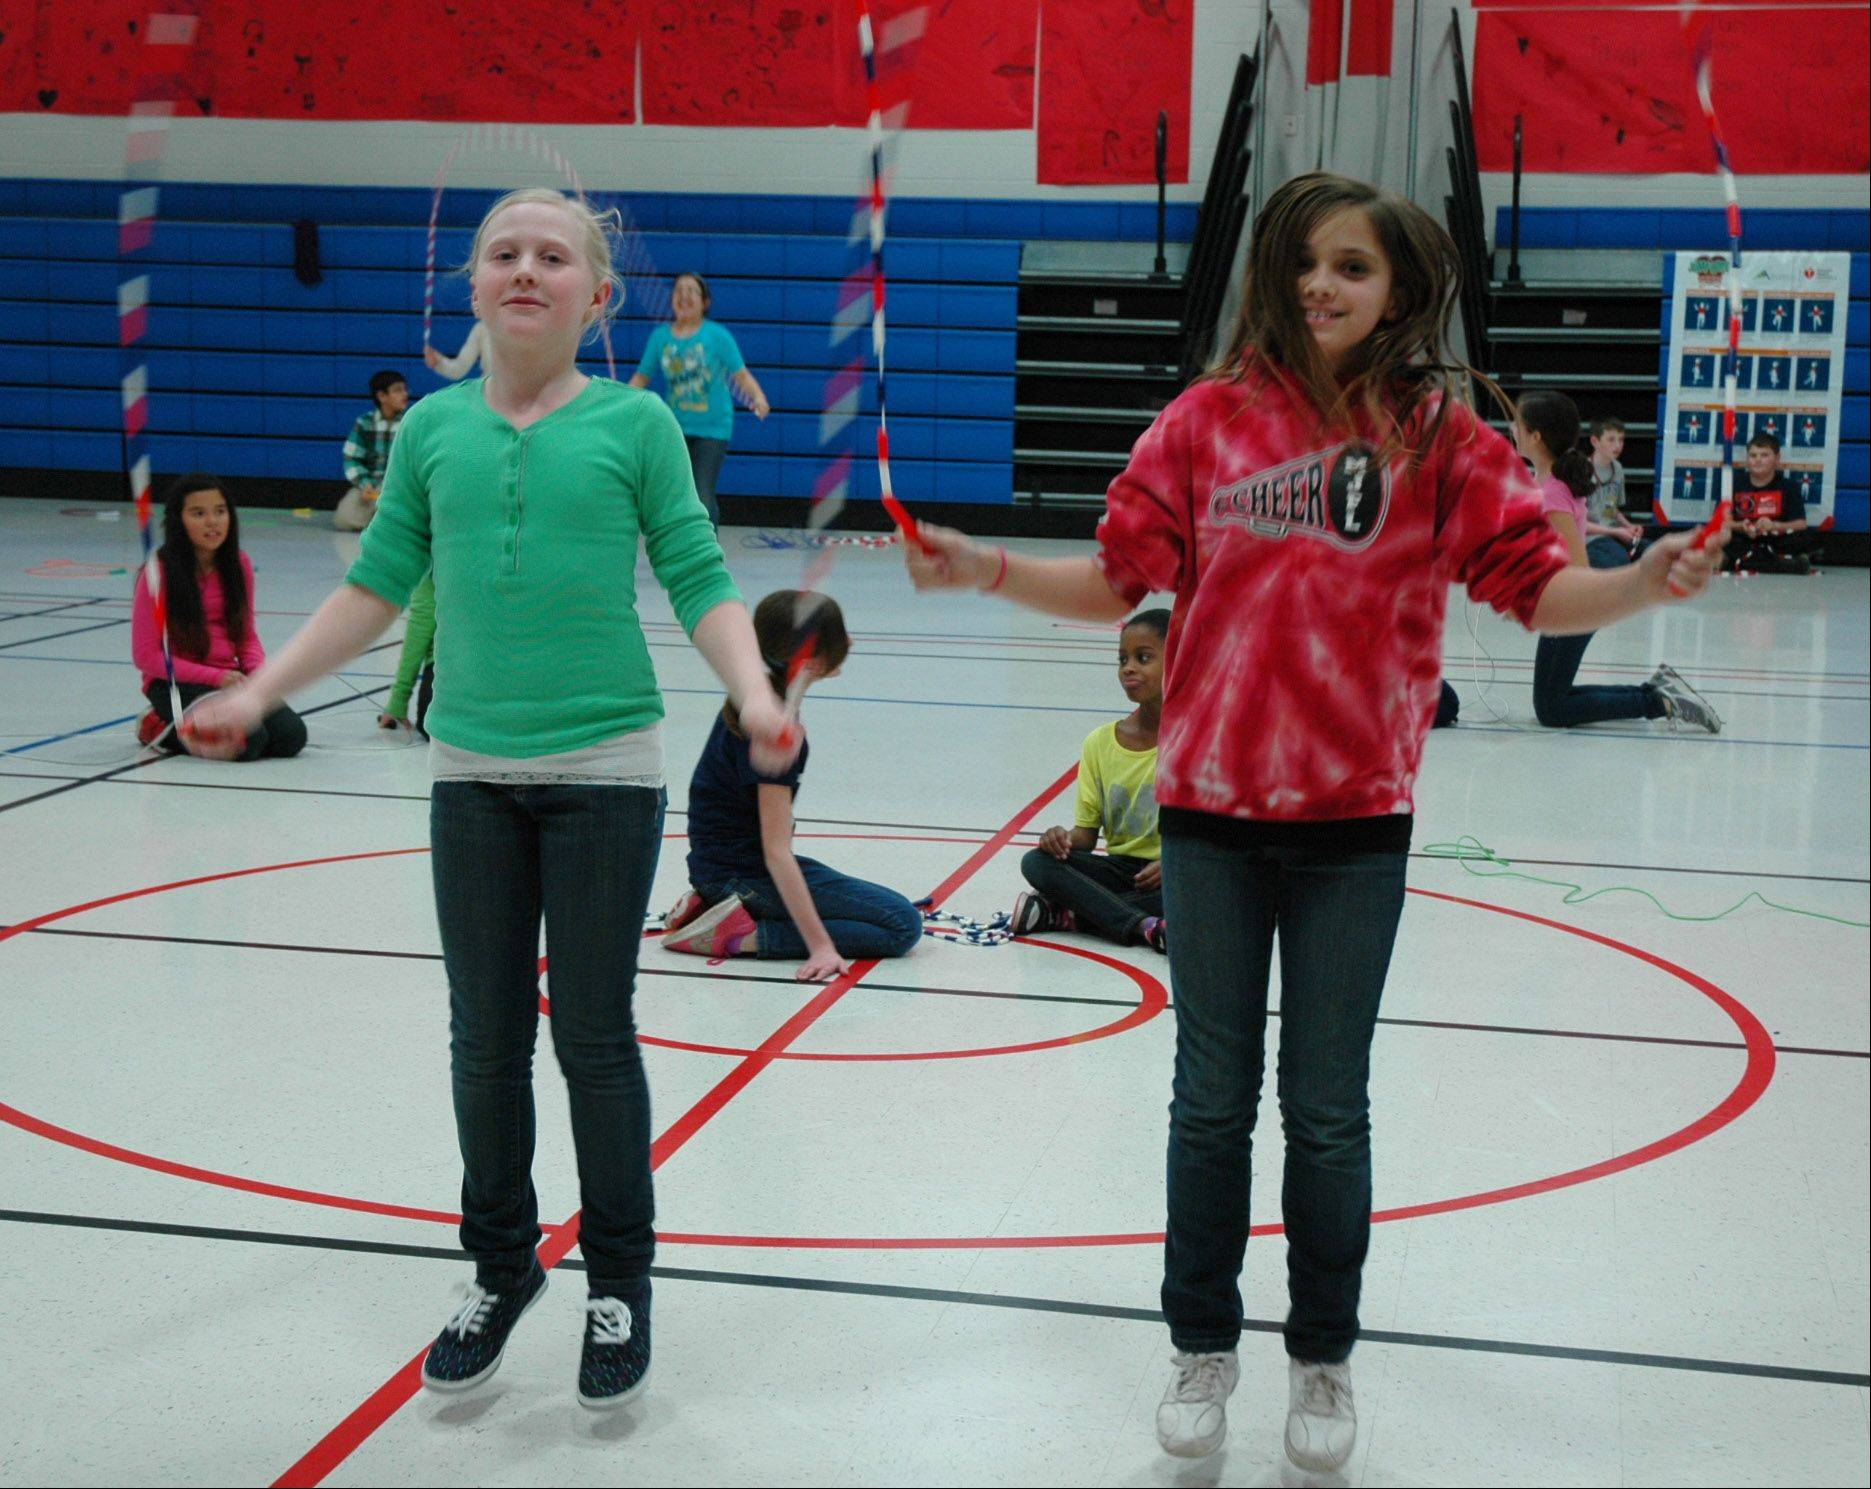 Fremont Intermediary School students Lucy Gustafson, left, and Kelsey Hassan were among those who participated in the school's Jump Rope for Heart fundraiser. The event raised $20,514 for the American Heart Association.